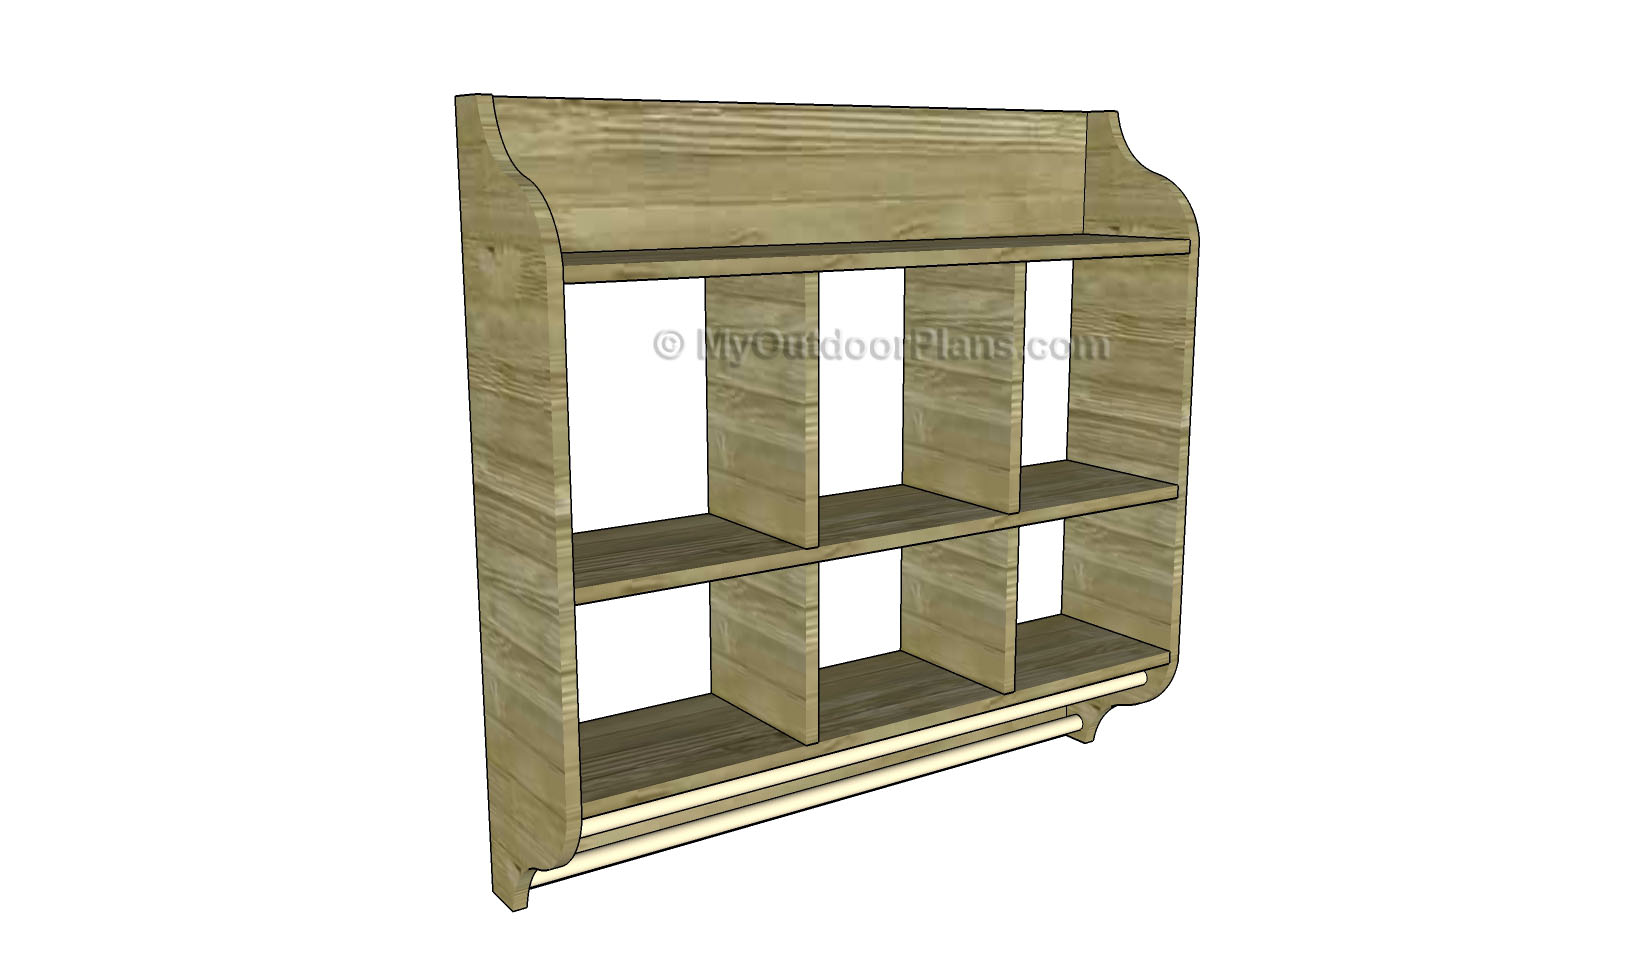 lovely Diy Hutch Plans Part - 8: Kitchen Hutch Plans | MyOutdoorPlans | Free Woodworking Plans and Projects,  DIY Shed, Wooden Playhouse, Pergola, Bbq